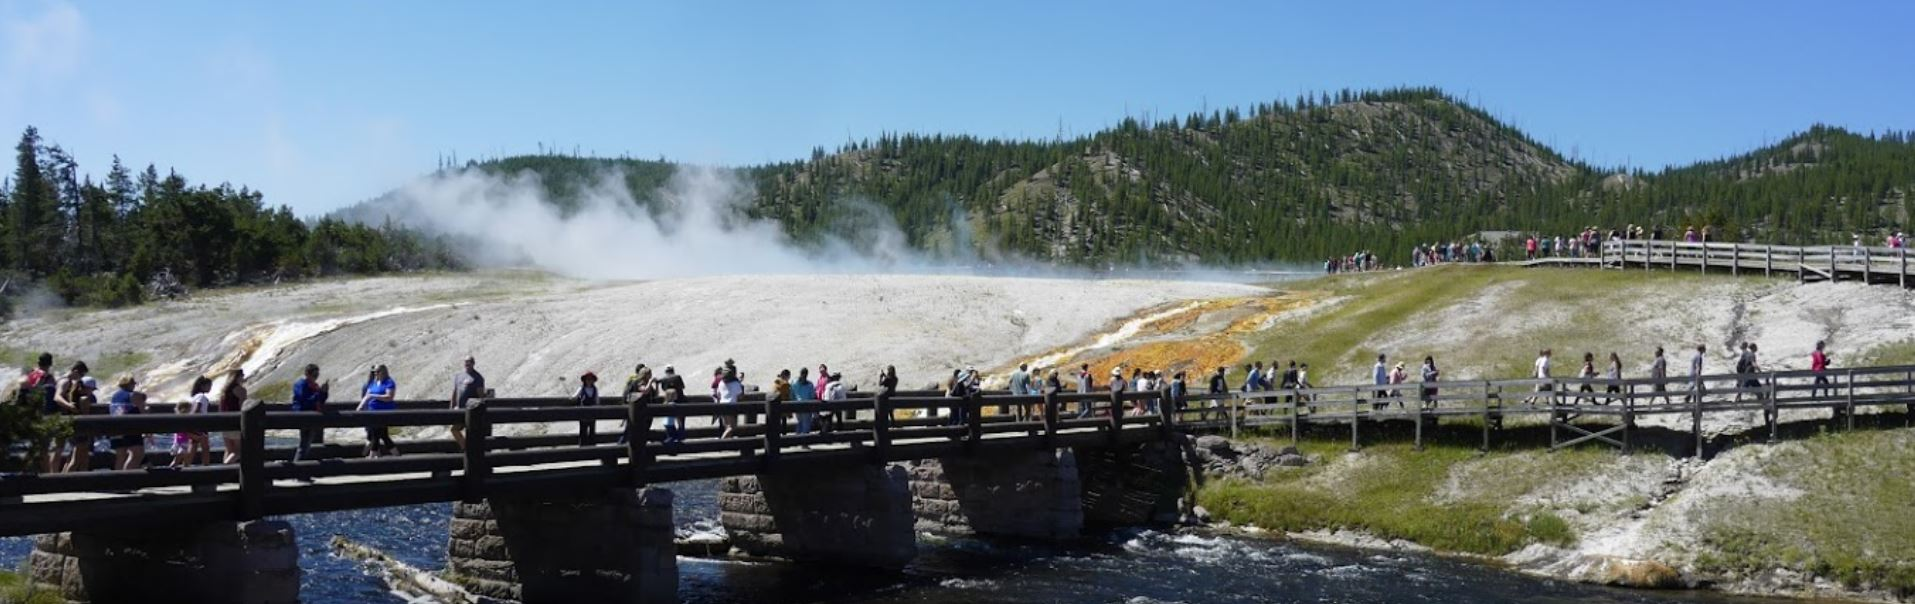 yellowstone walkways over water